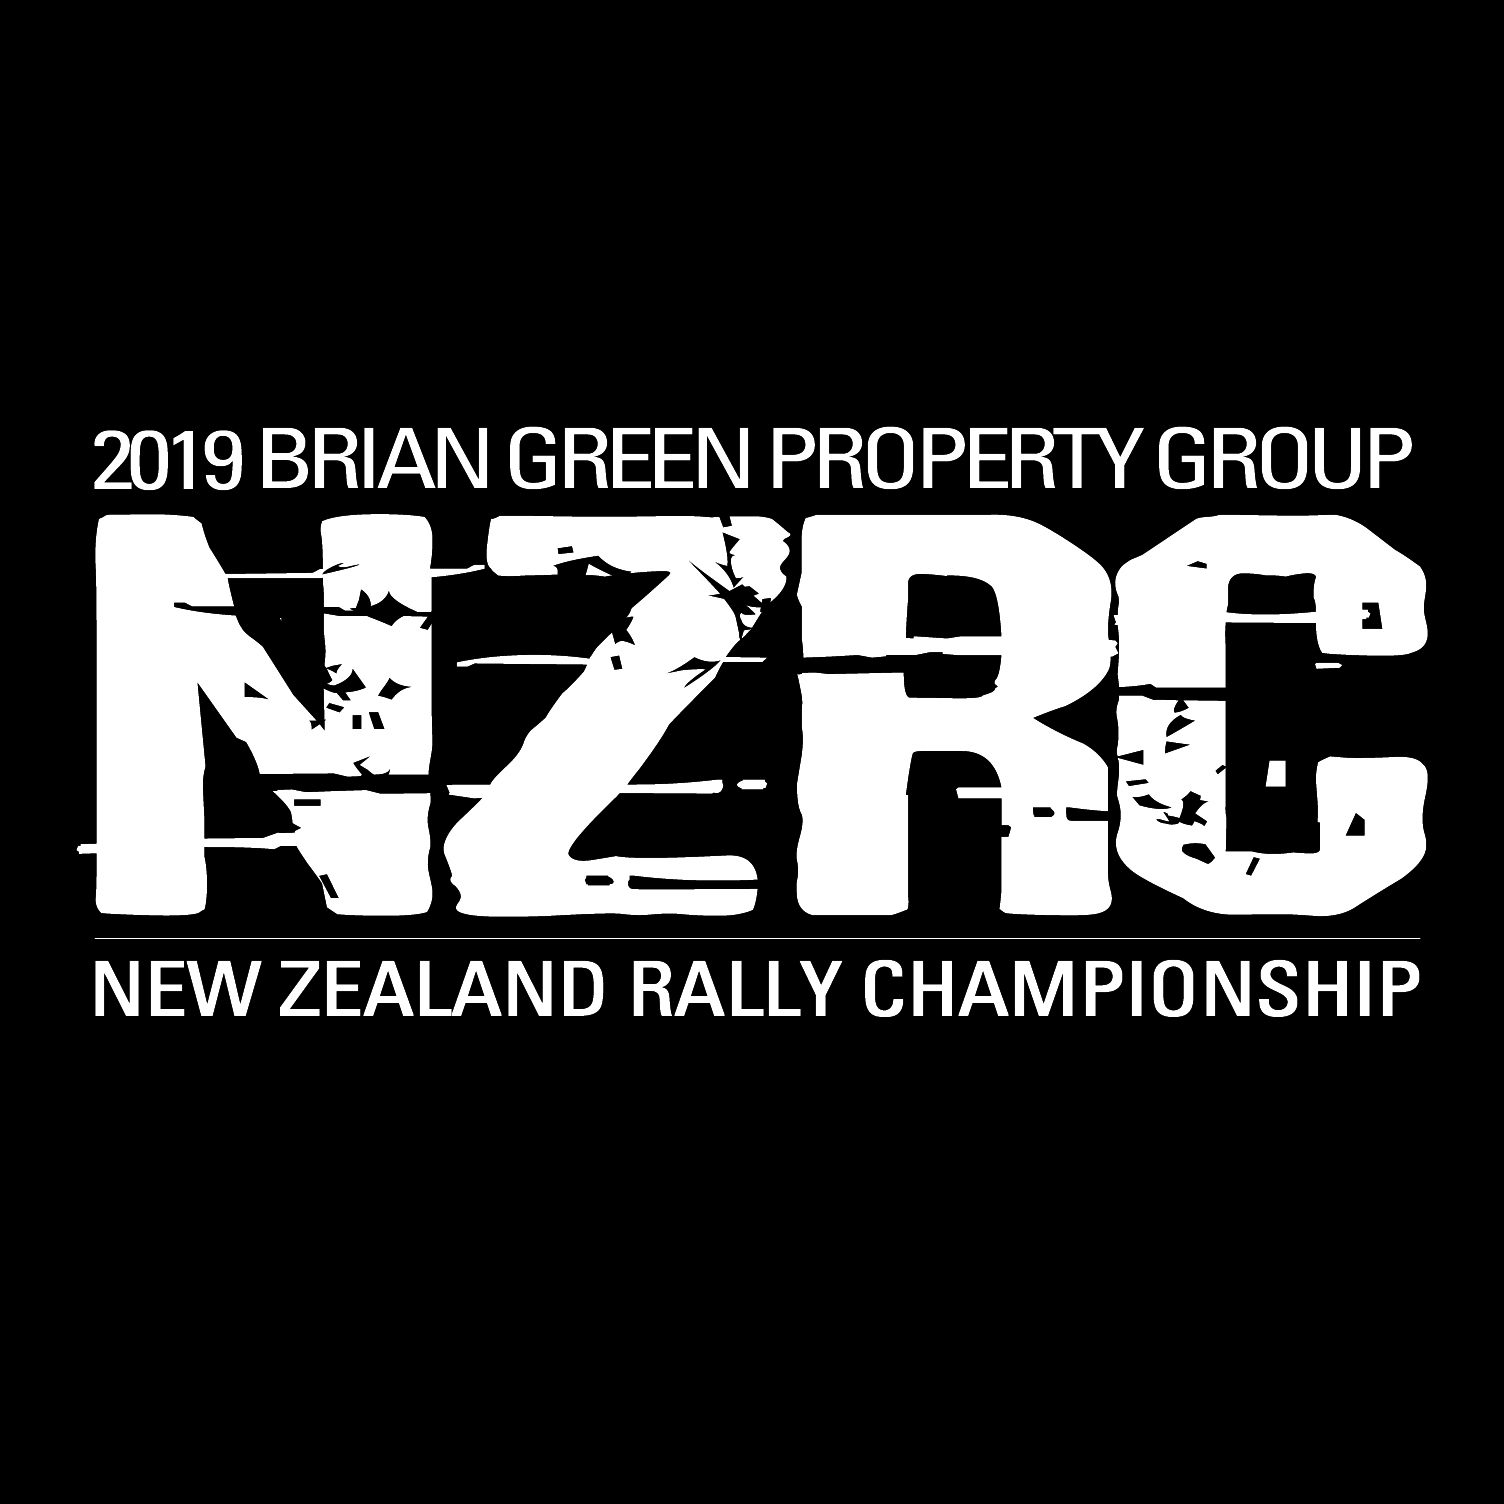 Masons lead rally into darkness | :: Brian Green Property Group New Zealand Rally Championship ::